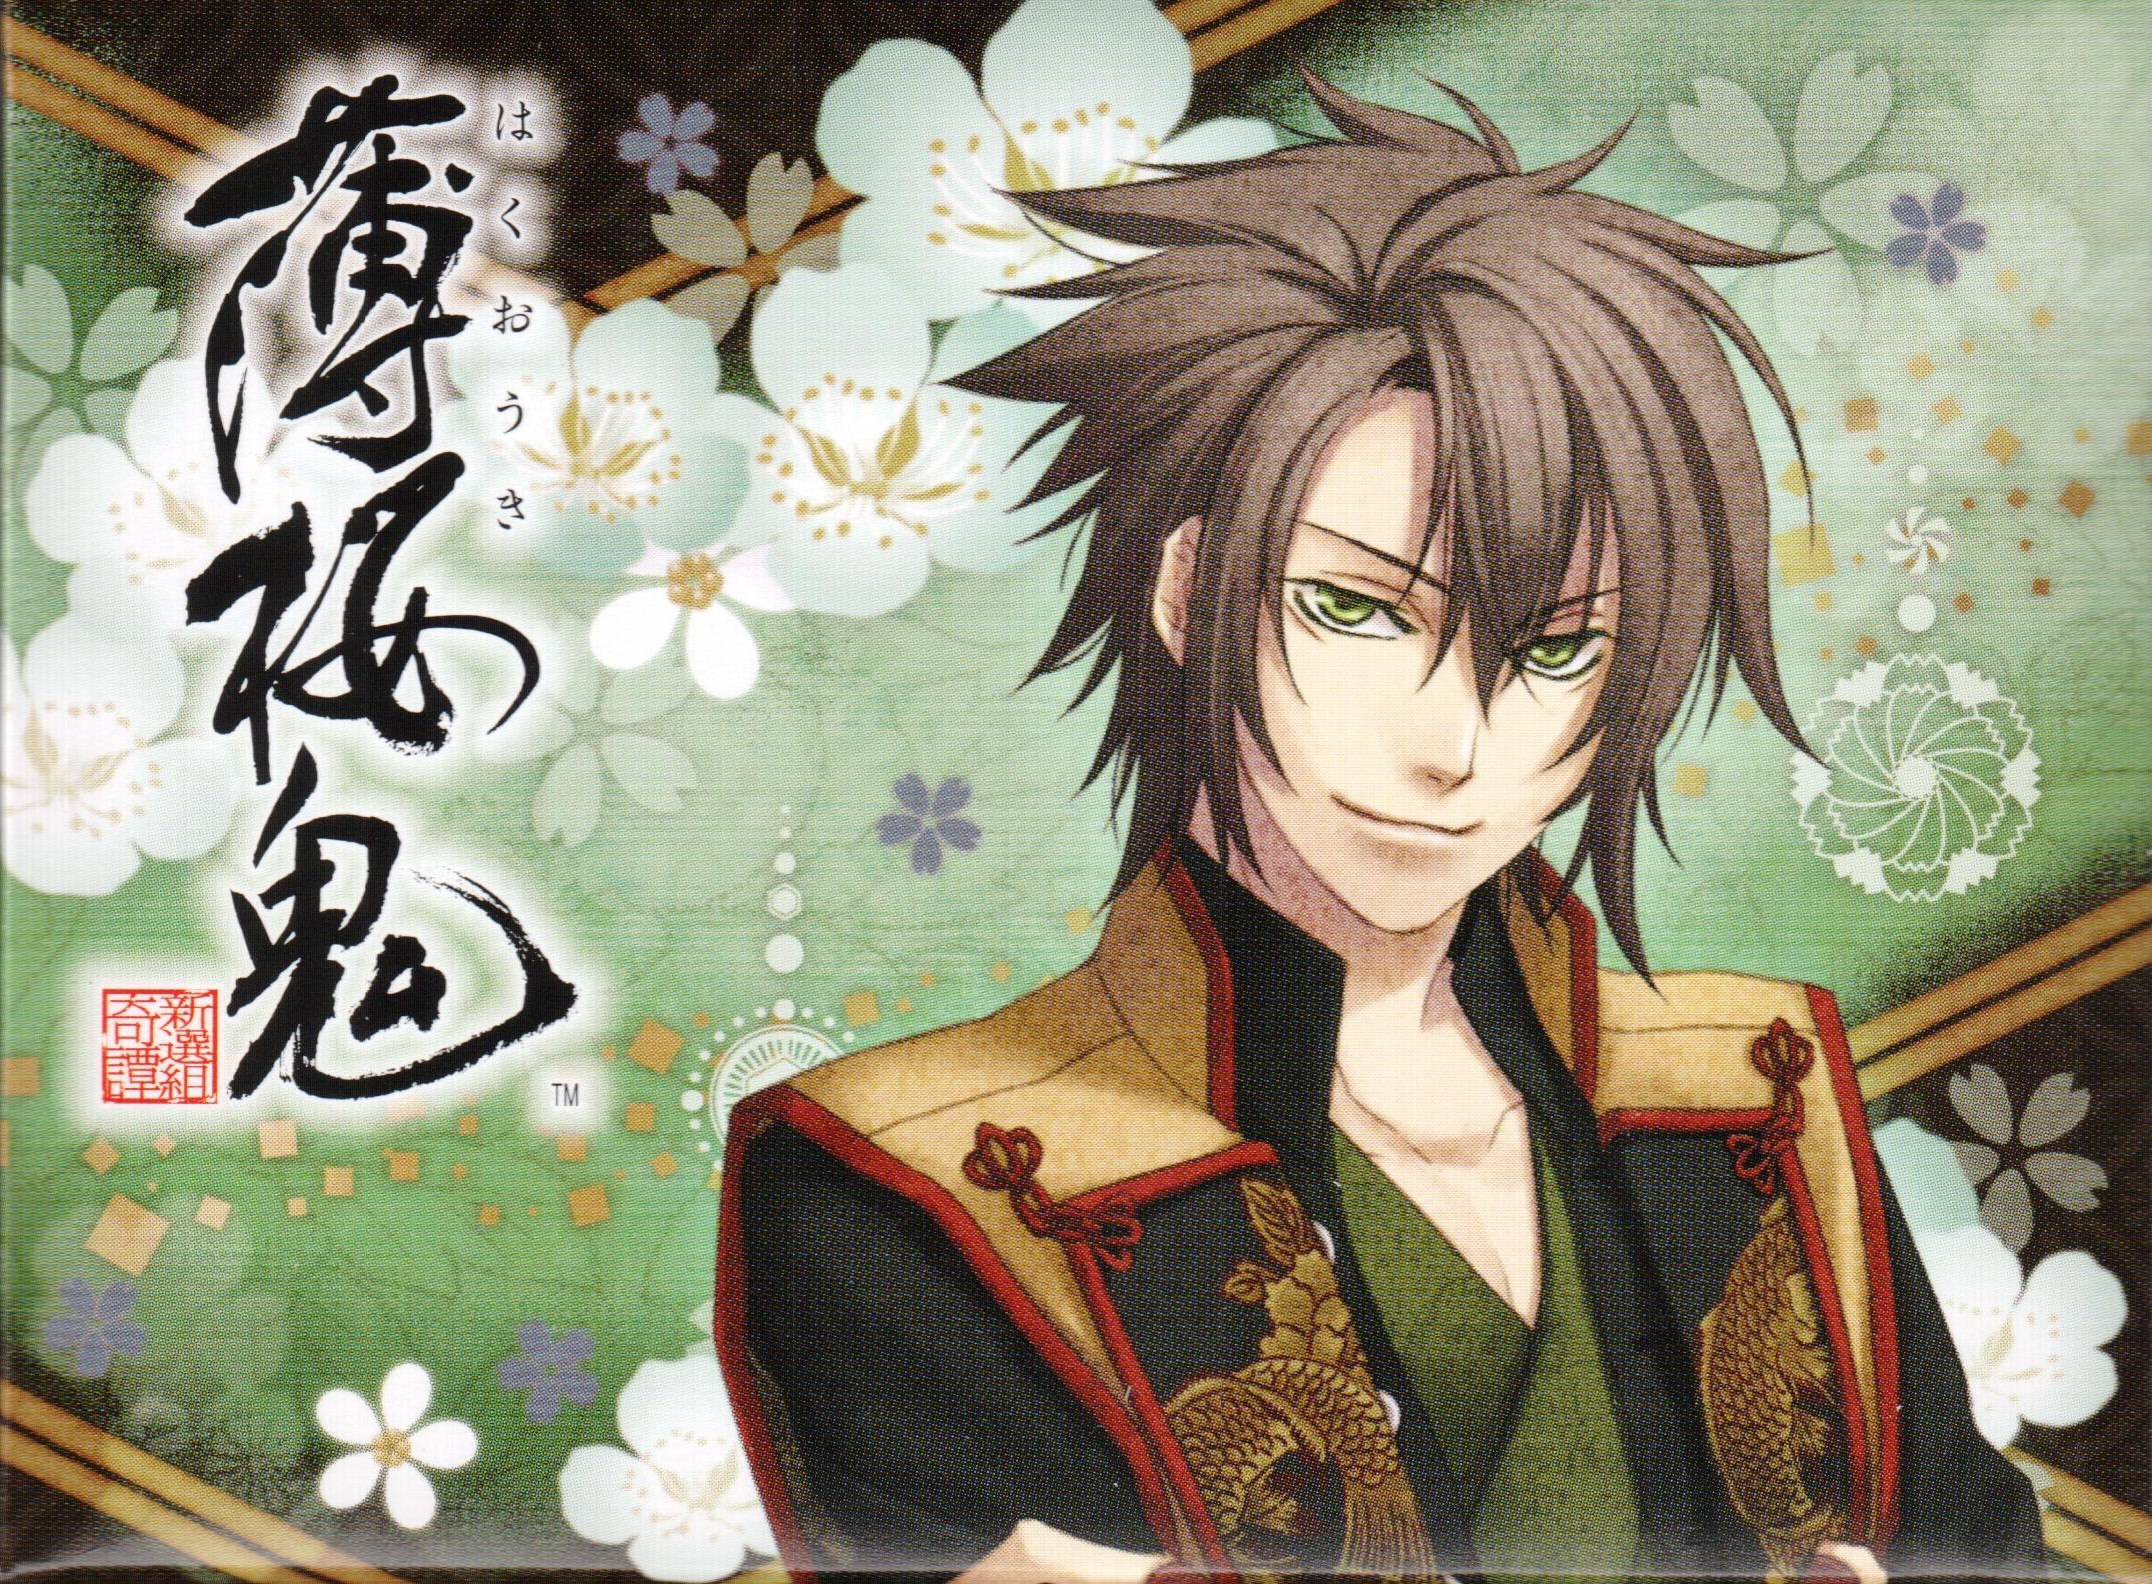 Res: 2152x1584, hakuouki hekketsu-roku images Okita Souji HD wallpaper and background photos